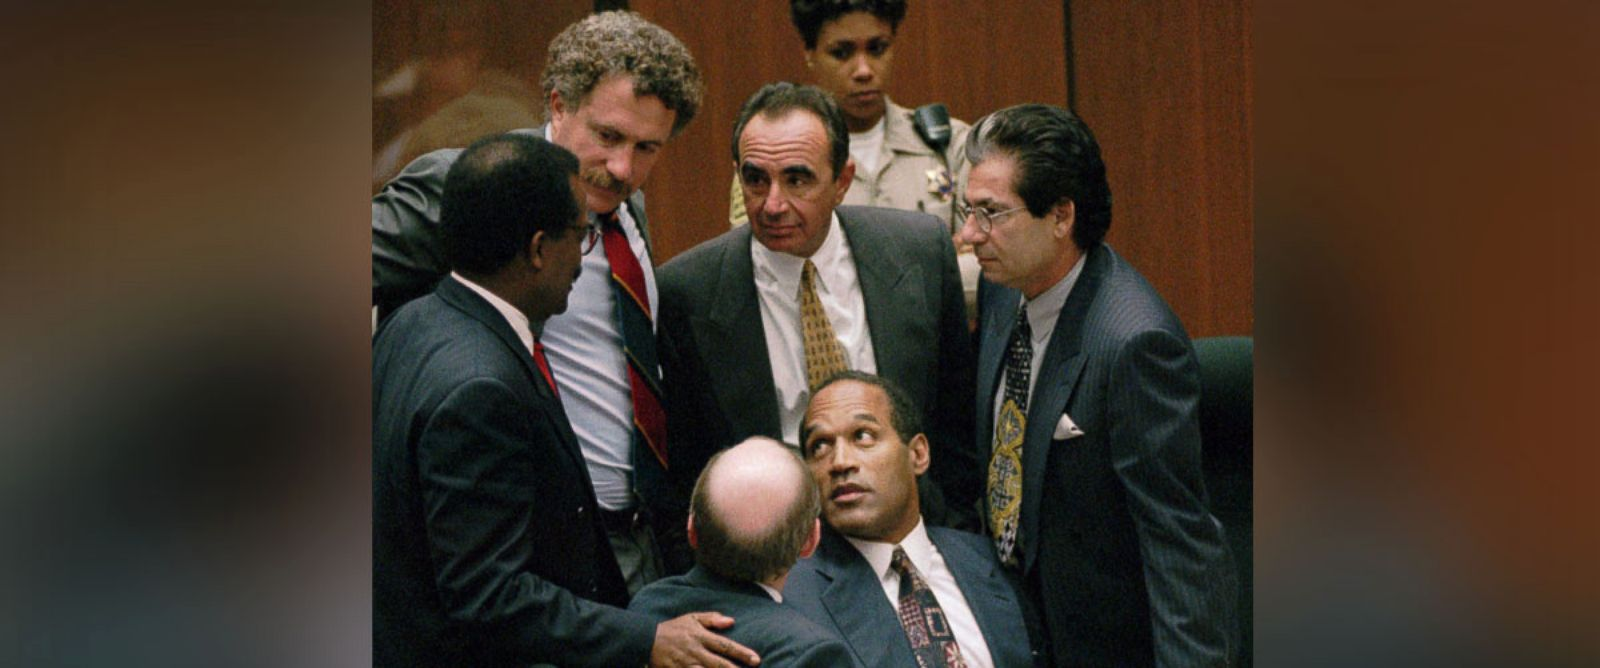 PHOTO: Double-murder defendant O.J. Simpson is surrounded by his Dream Team defense attorneys at the close of defense arguments on Sept. 28, 1995 in Los Angeles.